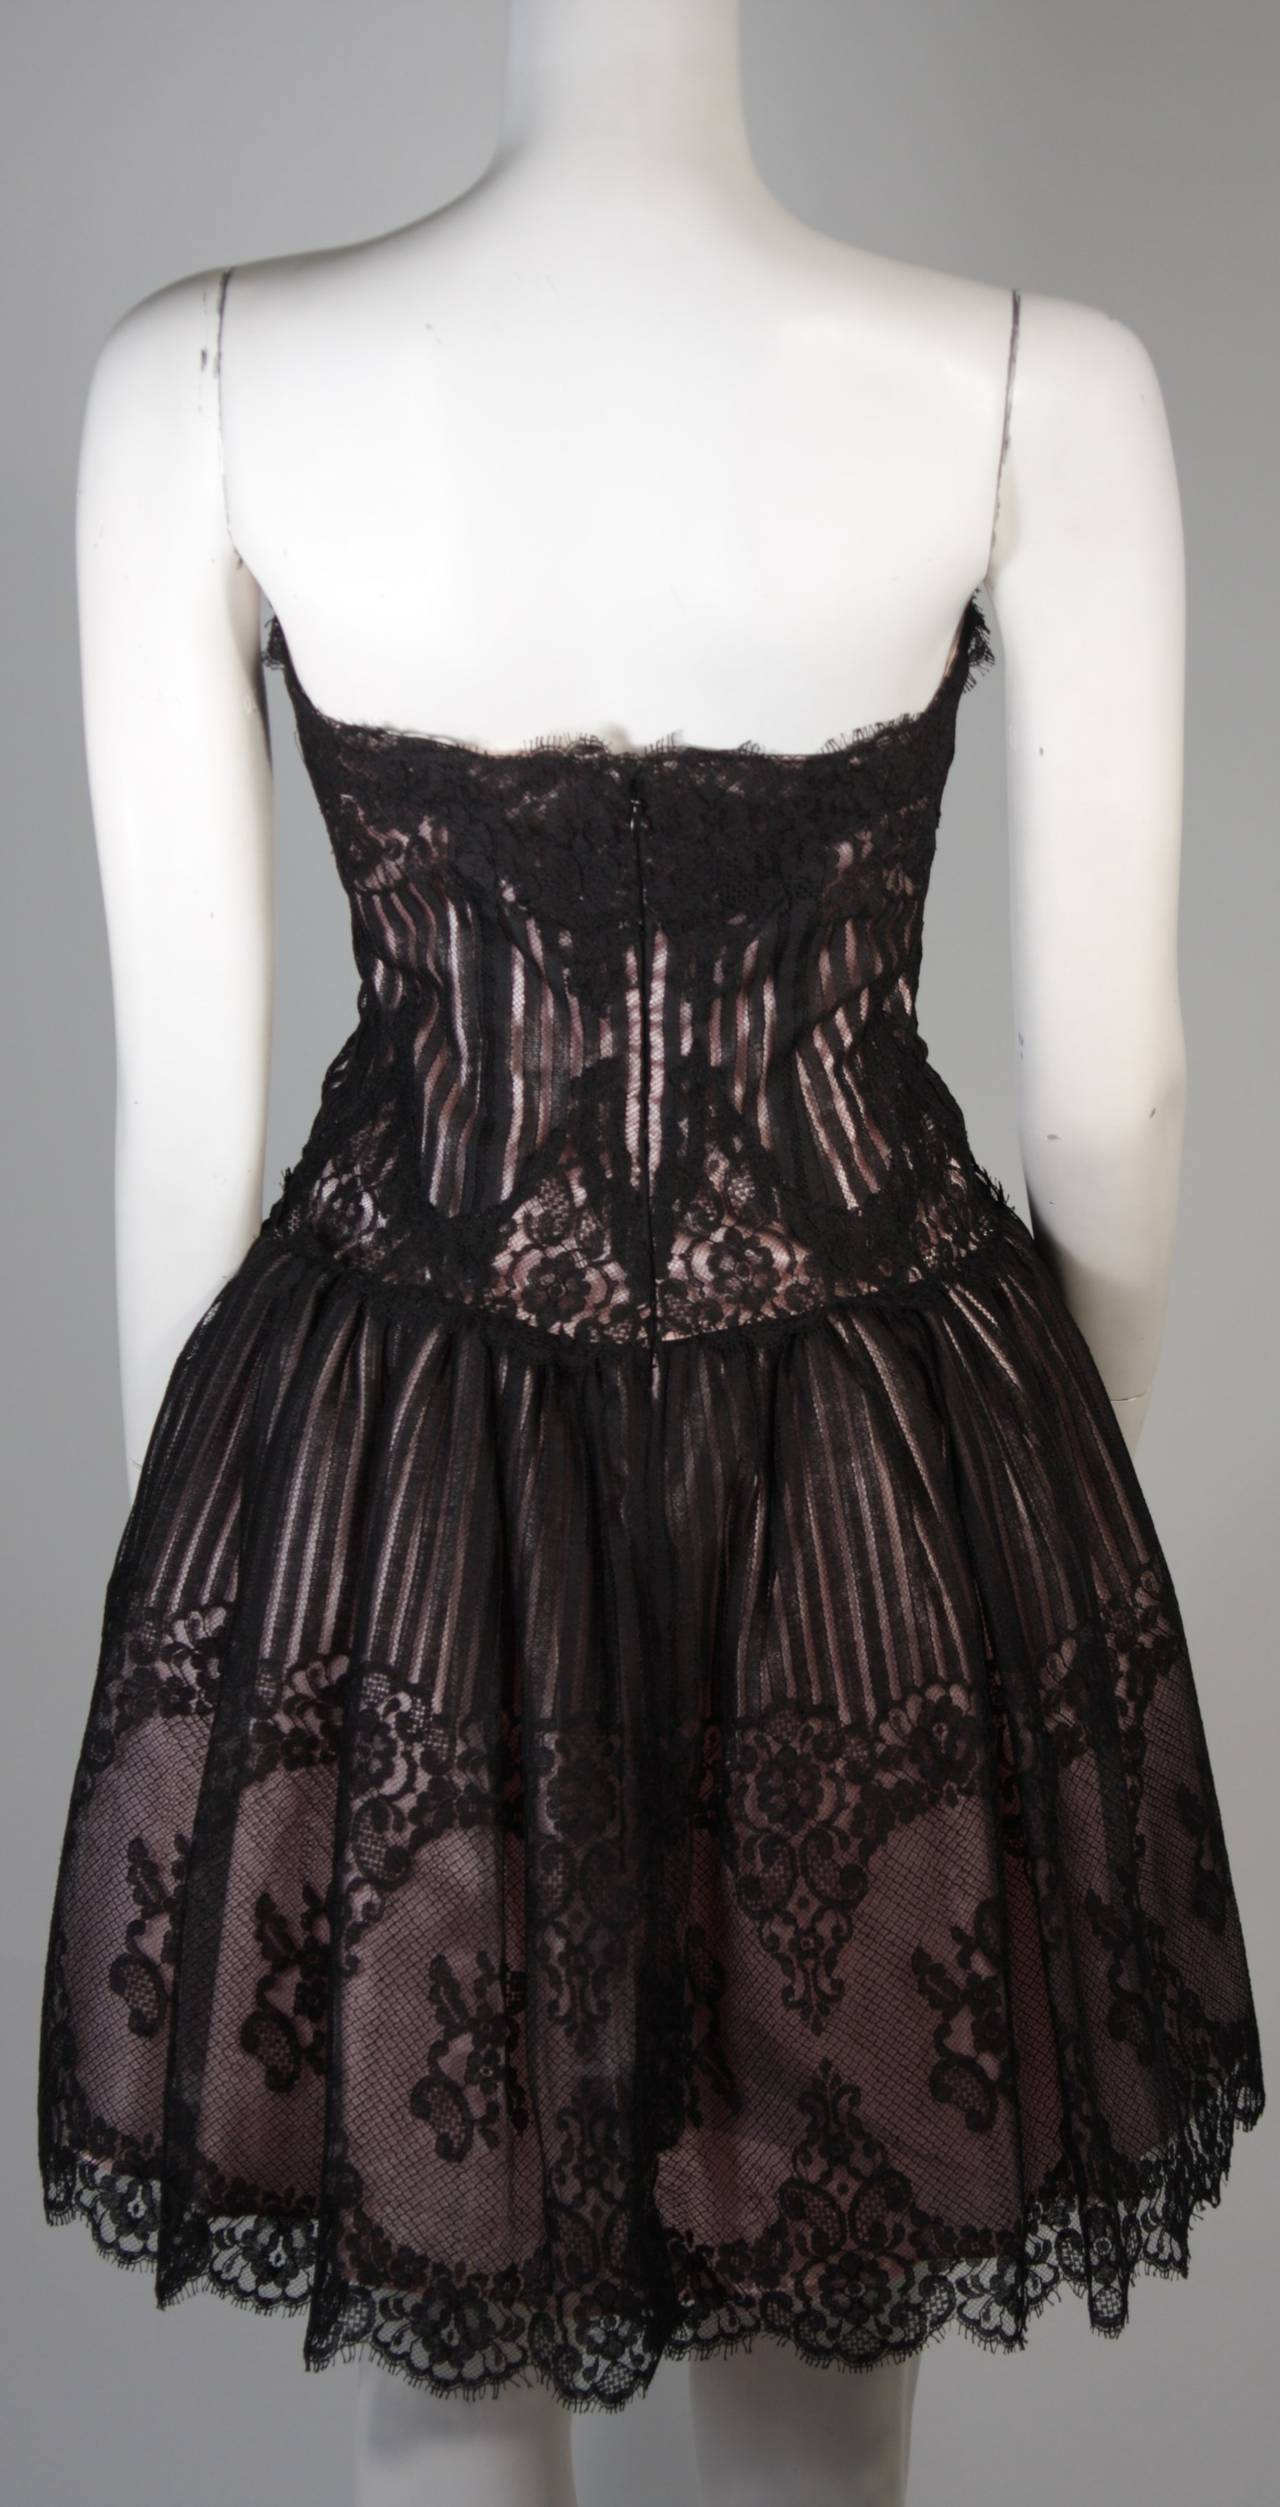 Victor Costa Strapless Black Lace Cocktail Dress with Pink Satin Size 40 7